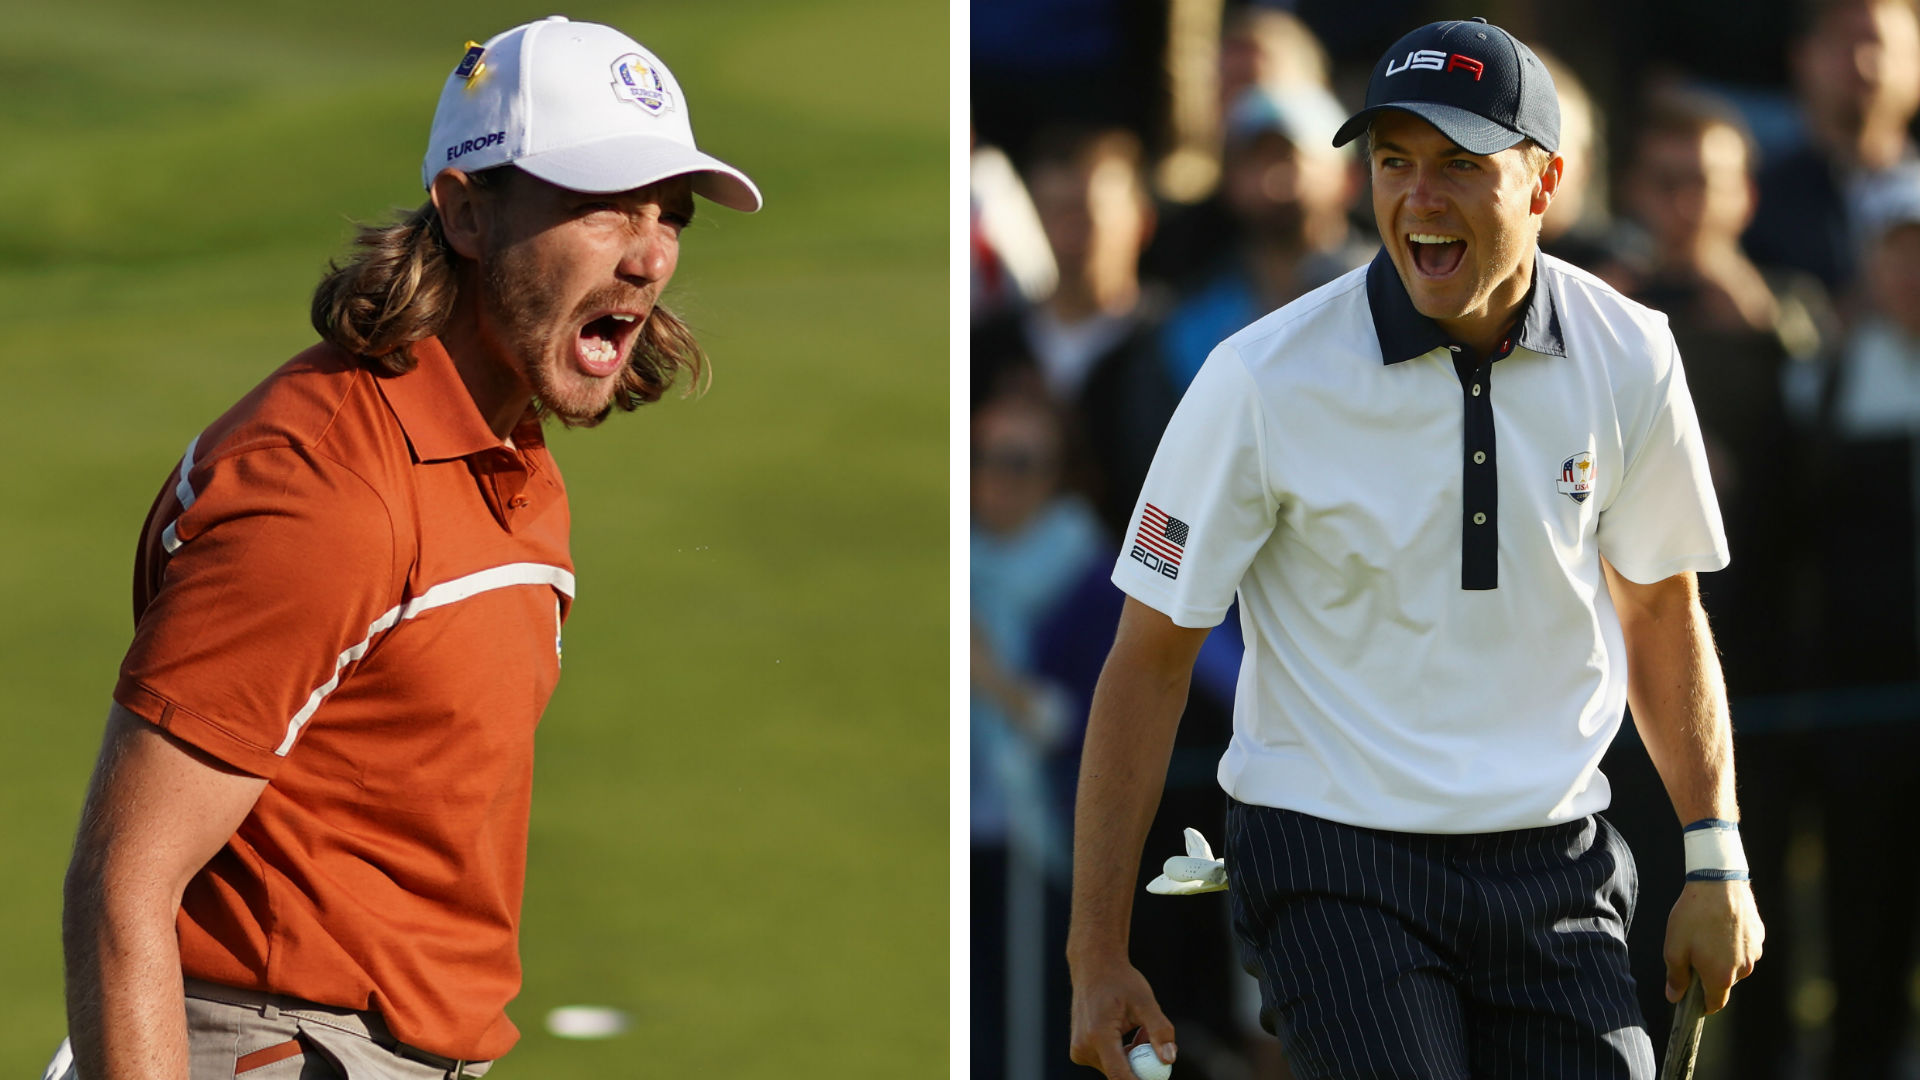 Ryder Cup roundup: Team USA faces uphill battle after tough Saturday